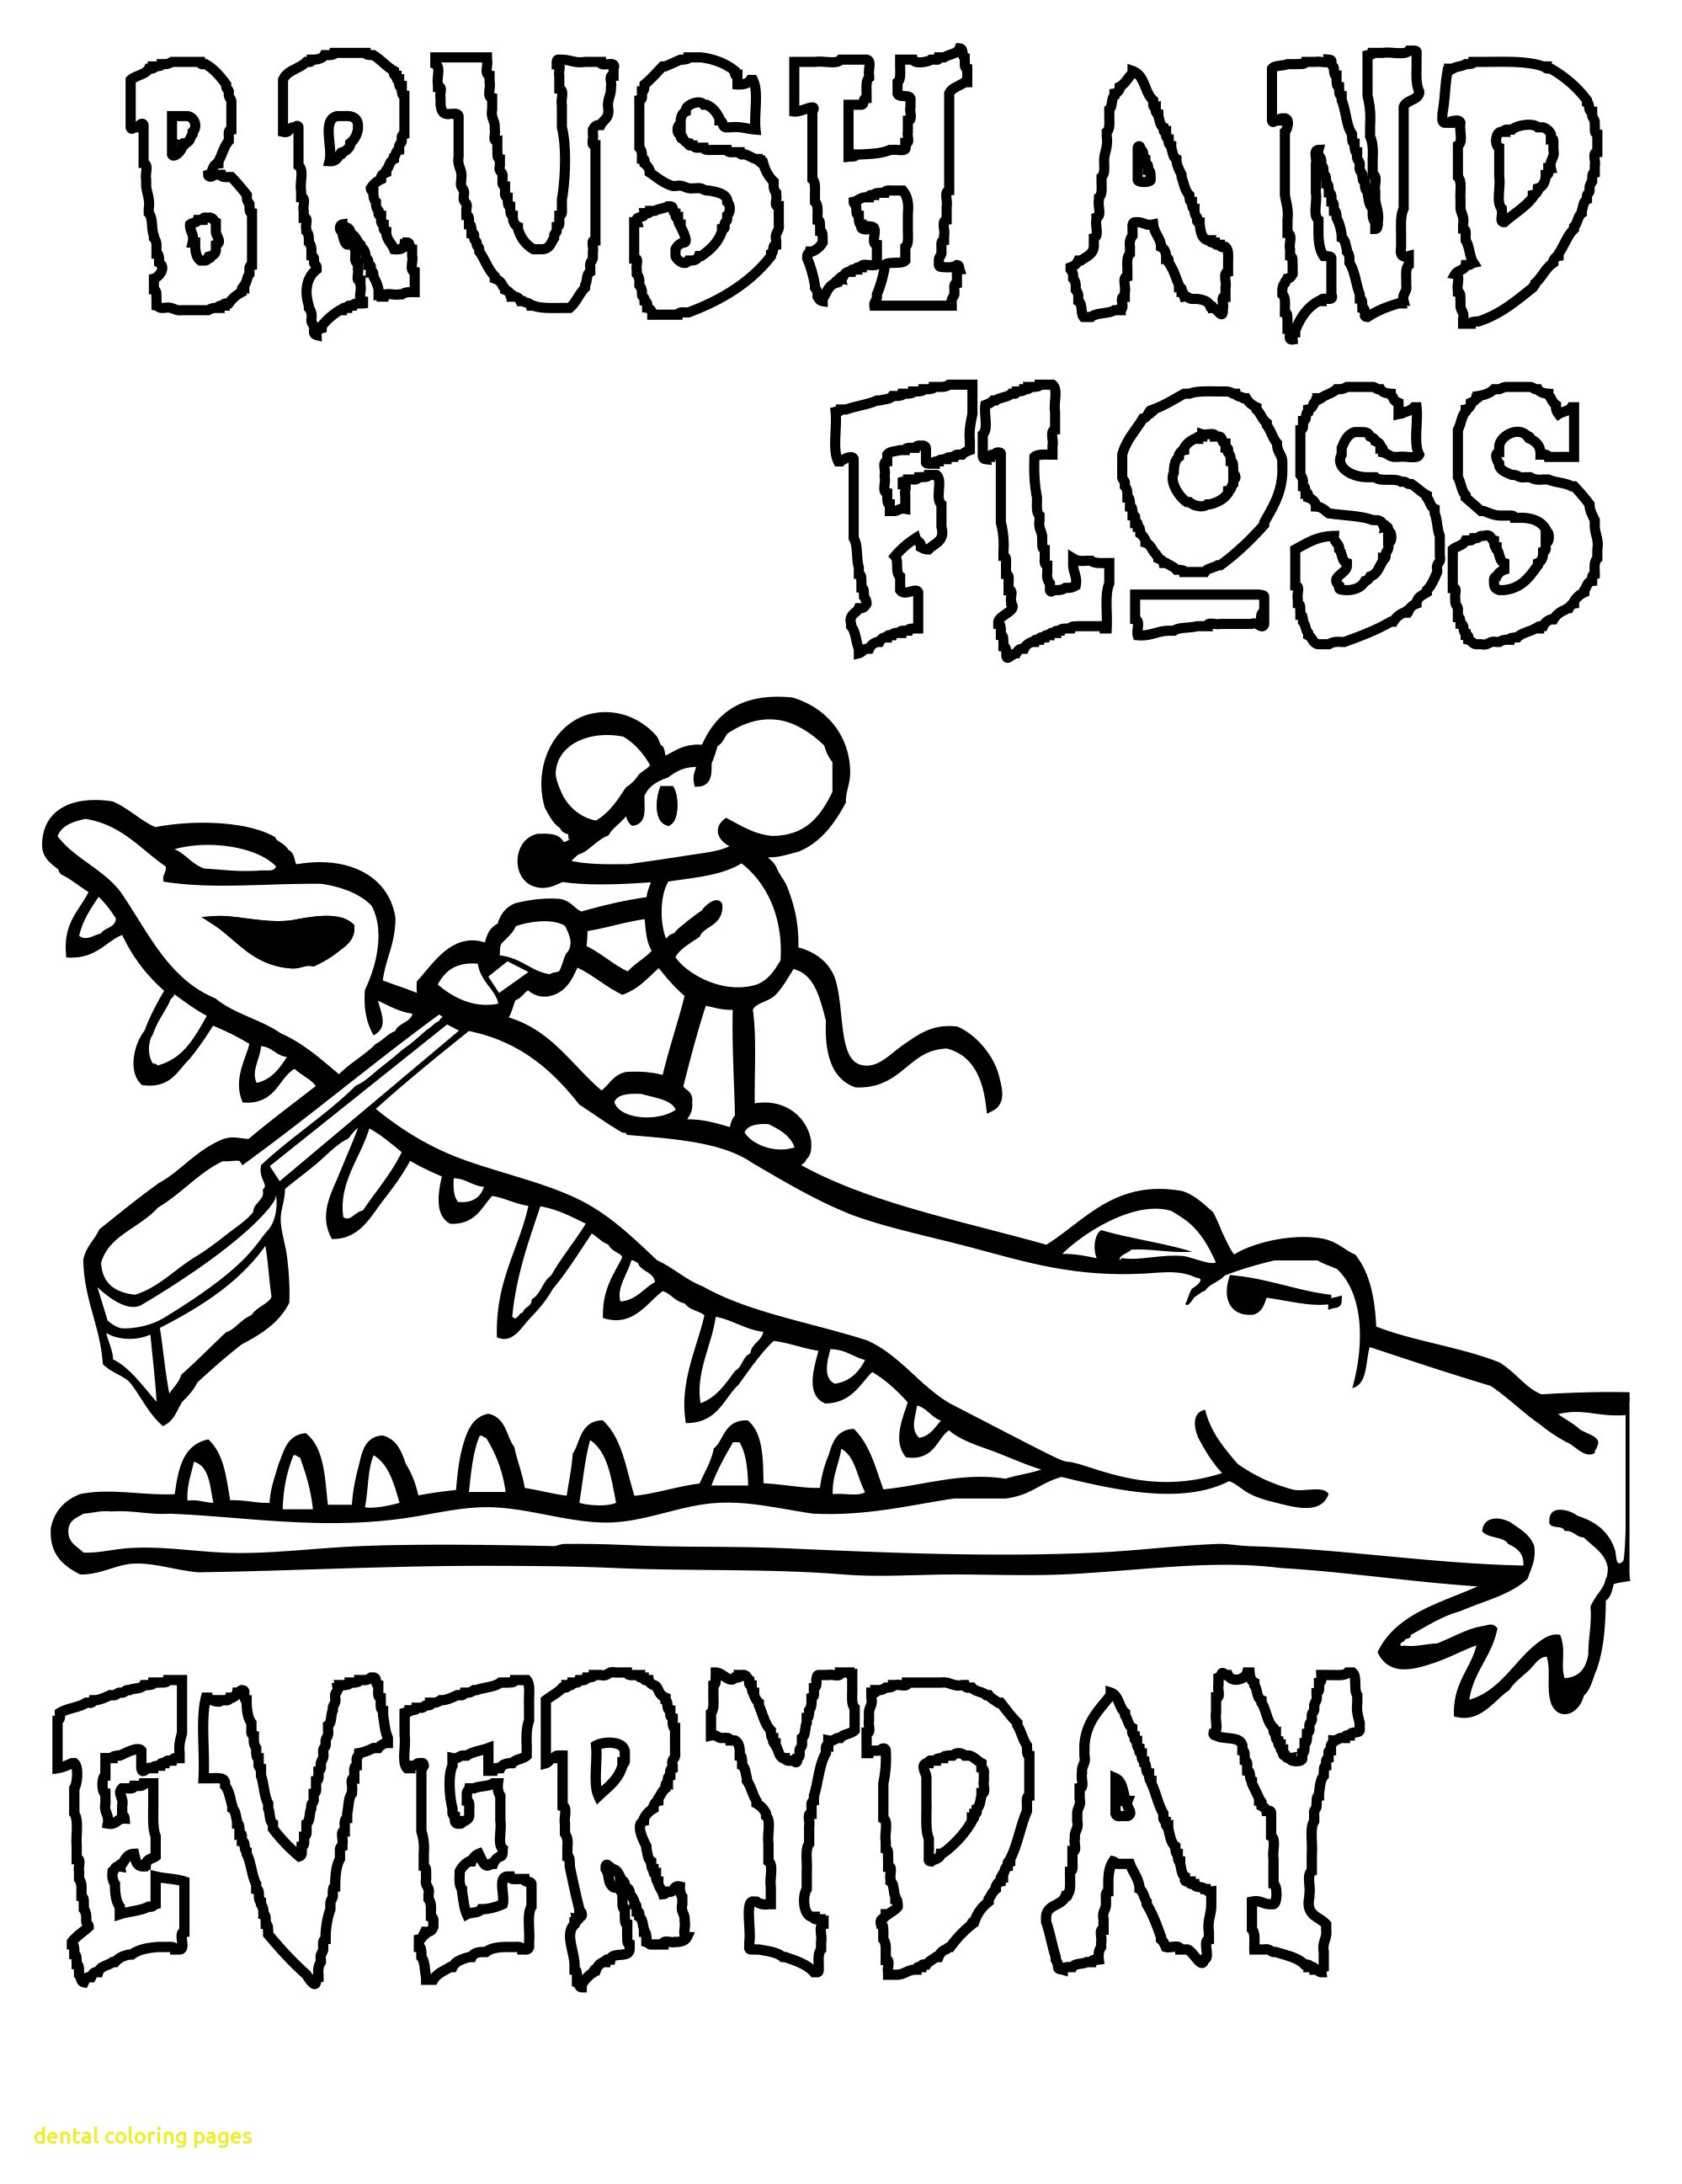 1998x2594 Dental Coloring Pages With Teeth Coloring Pages Brush Your Teeth